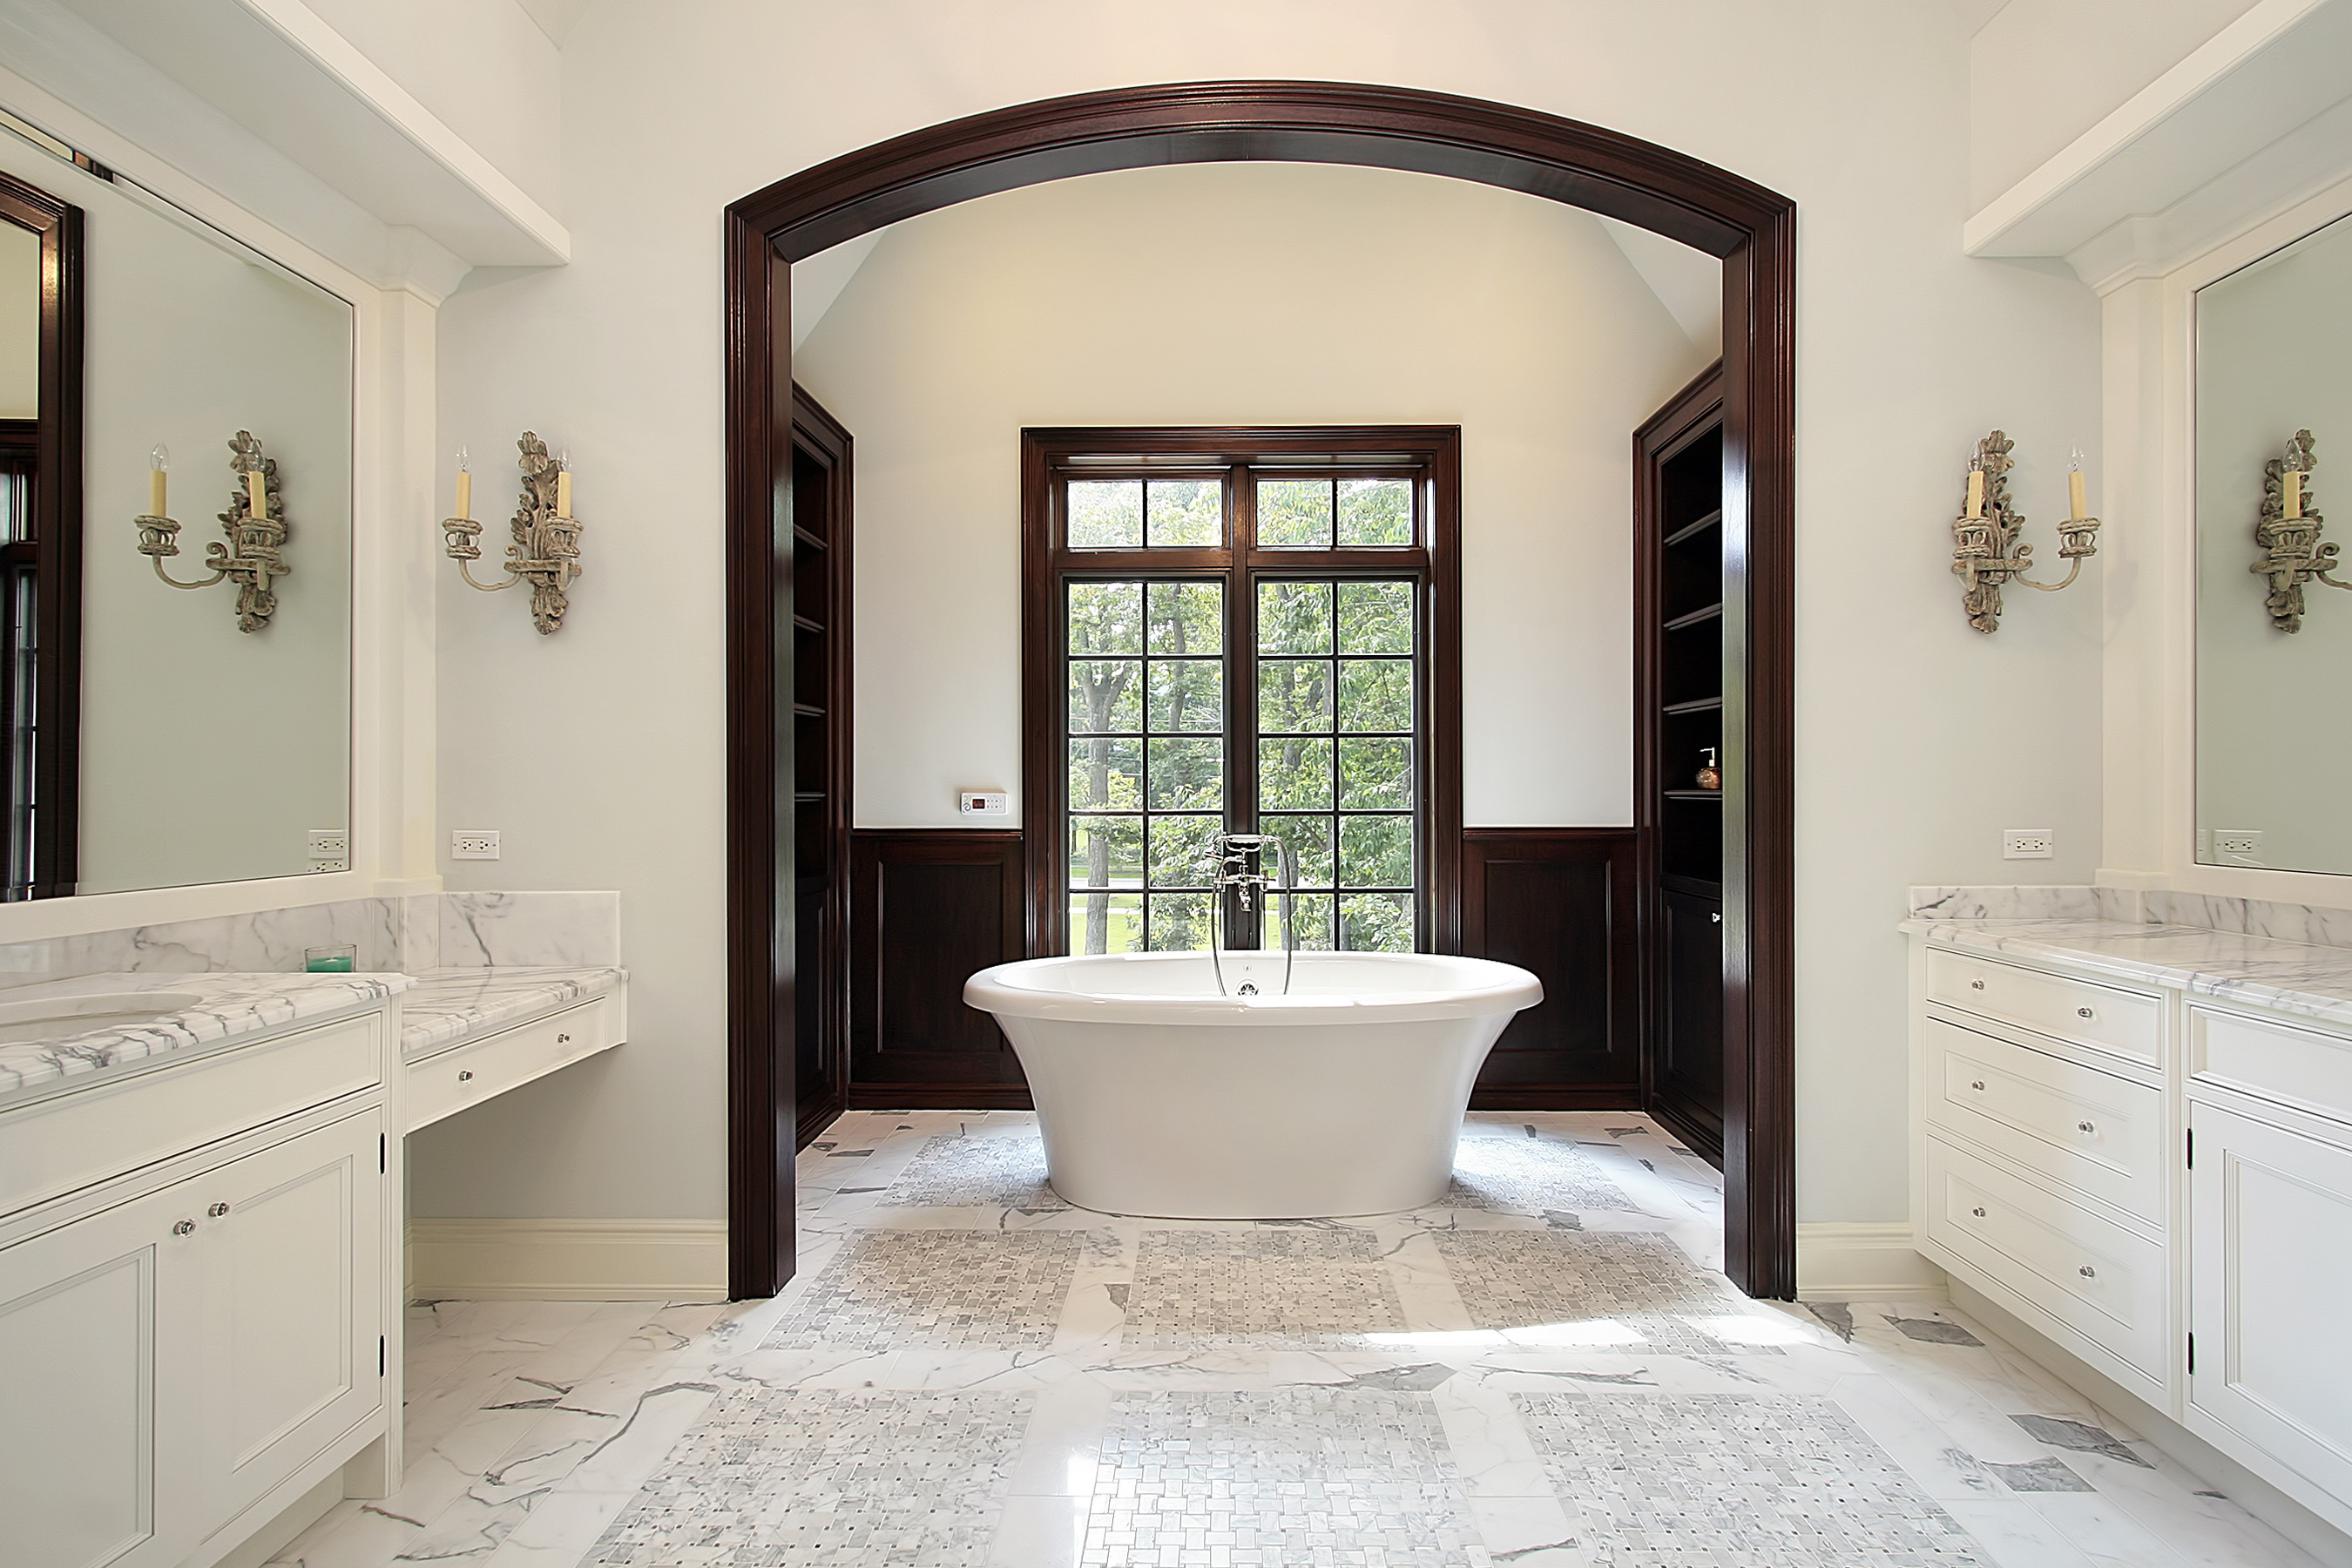 Maryland Bathroom Remodeling Maryland Bathroom Remodeling Contractor  Bathroom Remodelers .